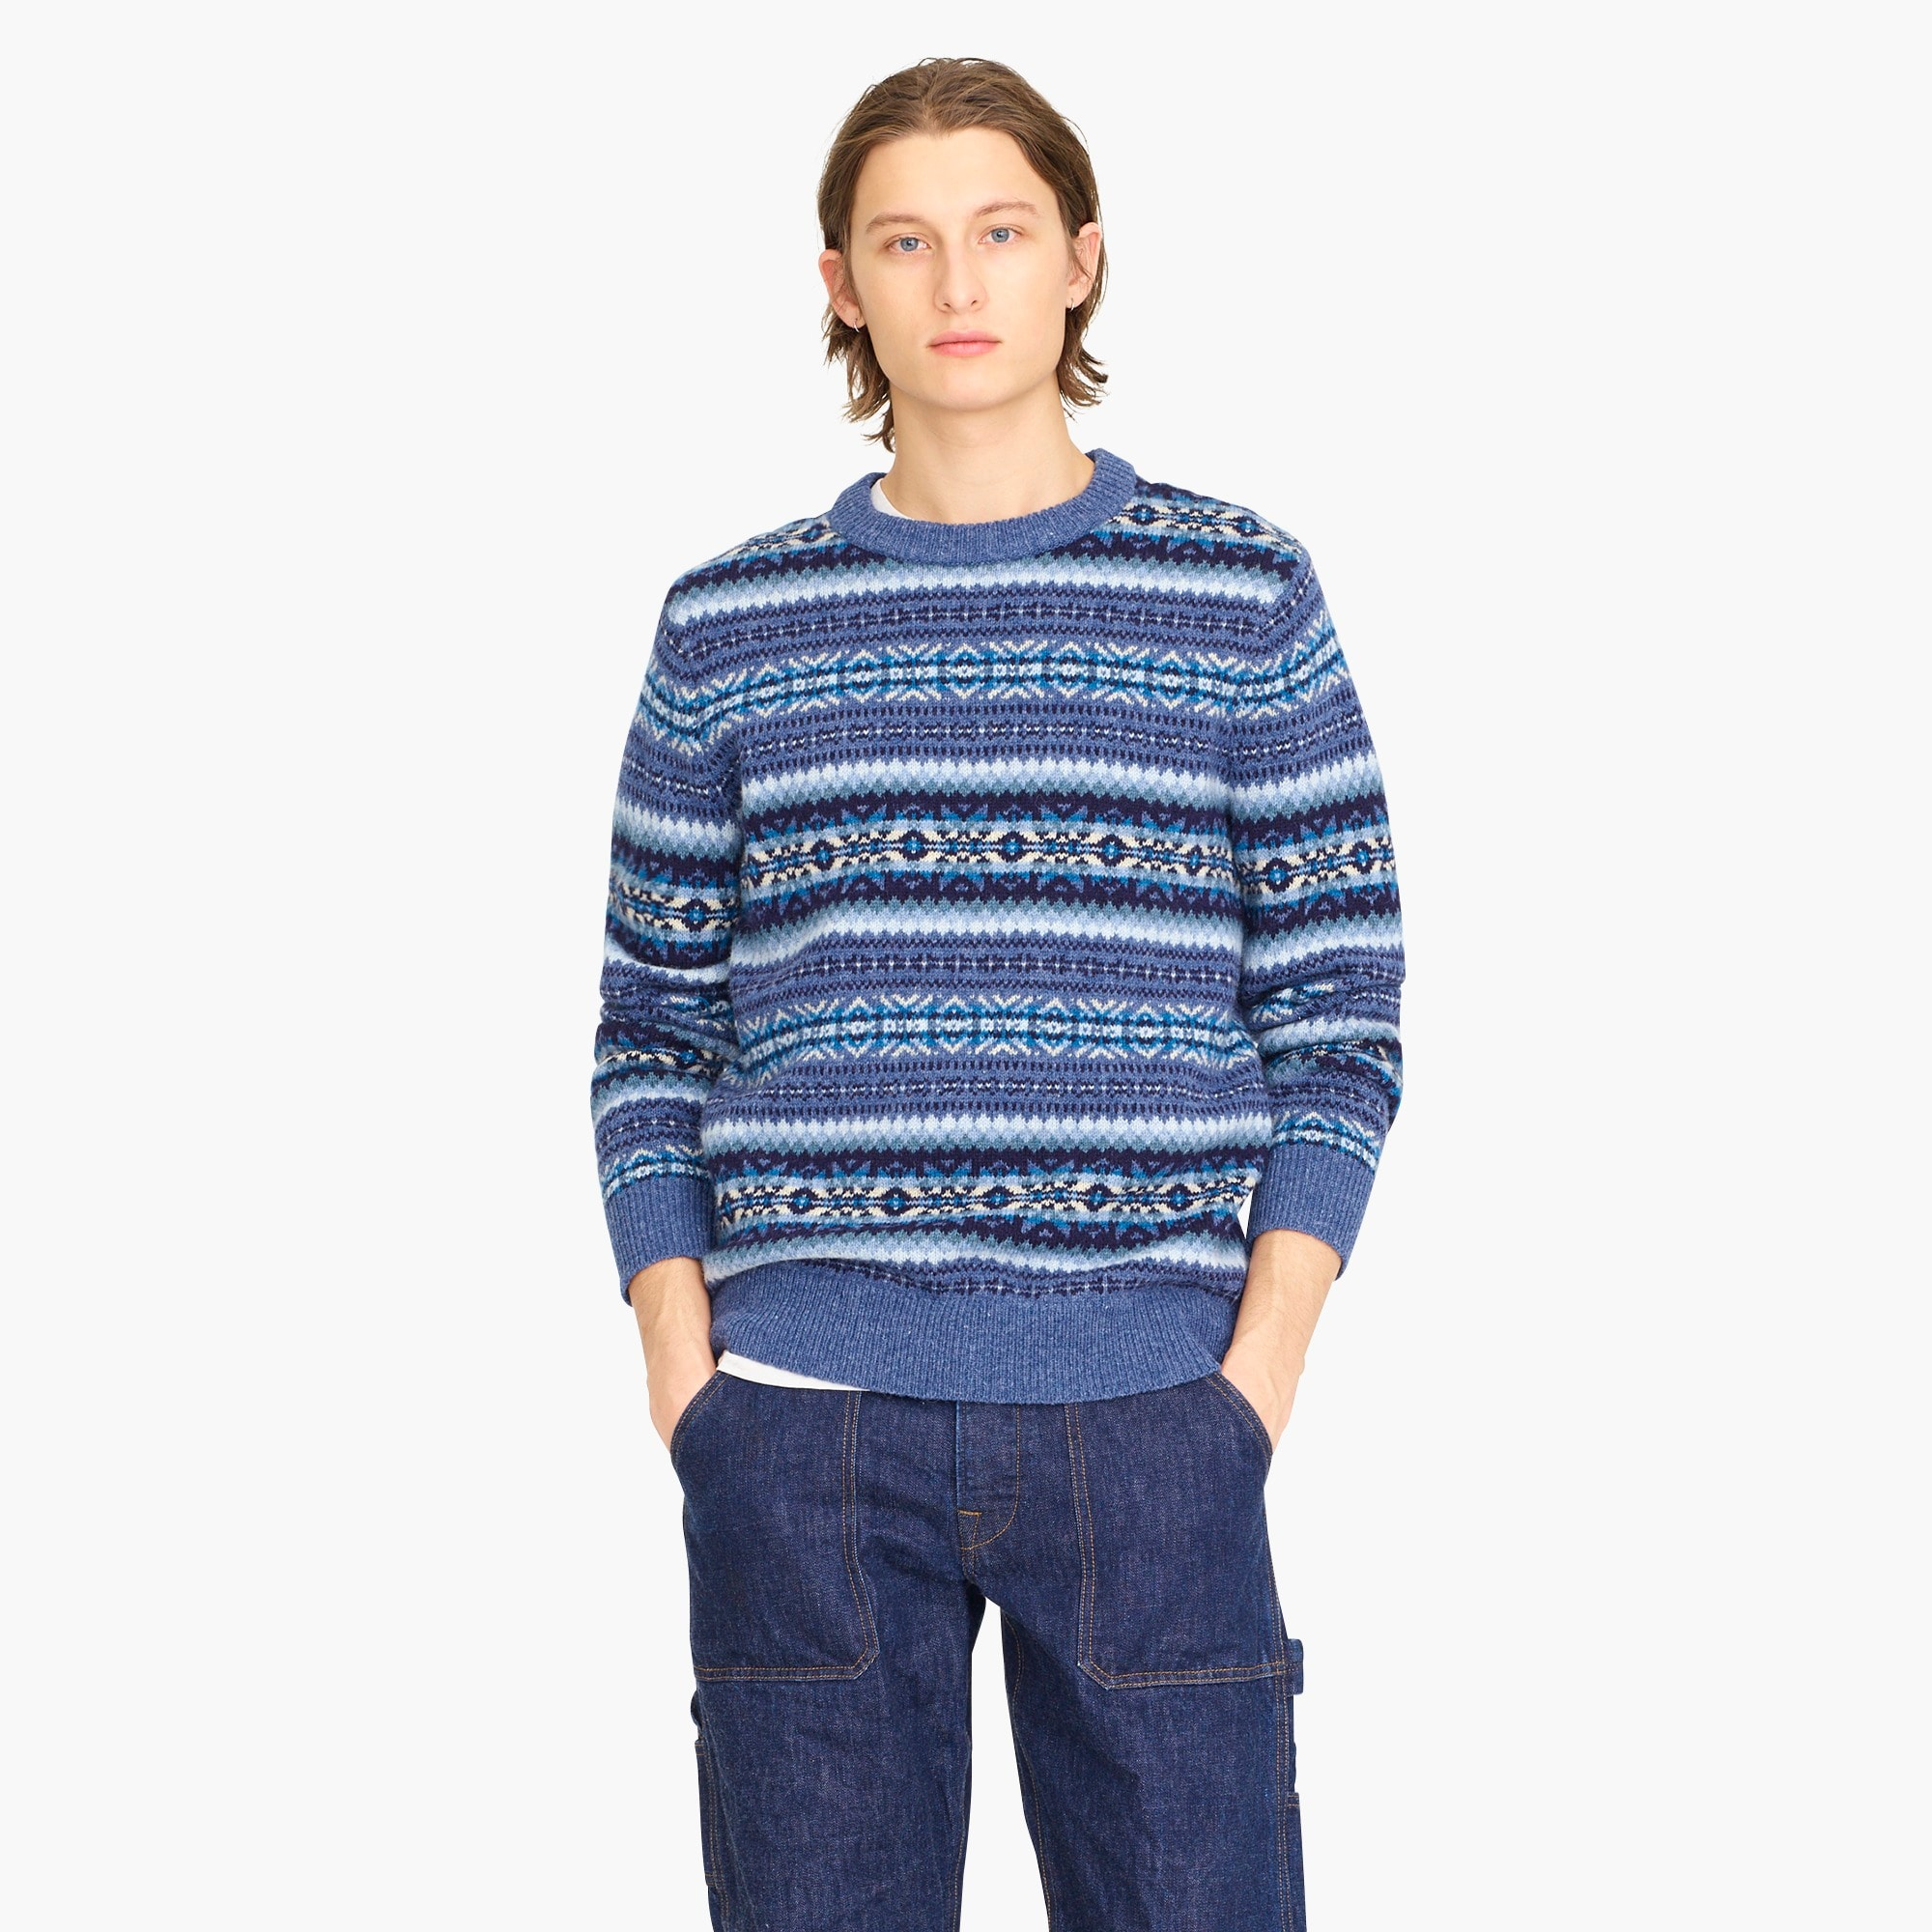 mens Wallace & Barnes crewneck sweater in blue Fair Isle